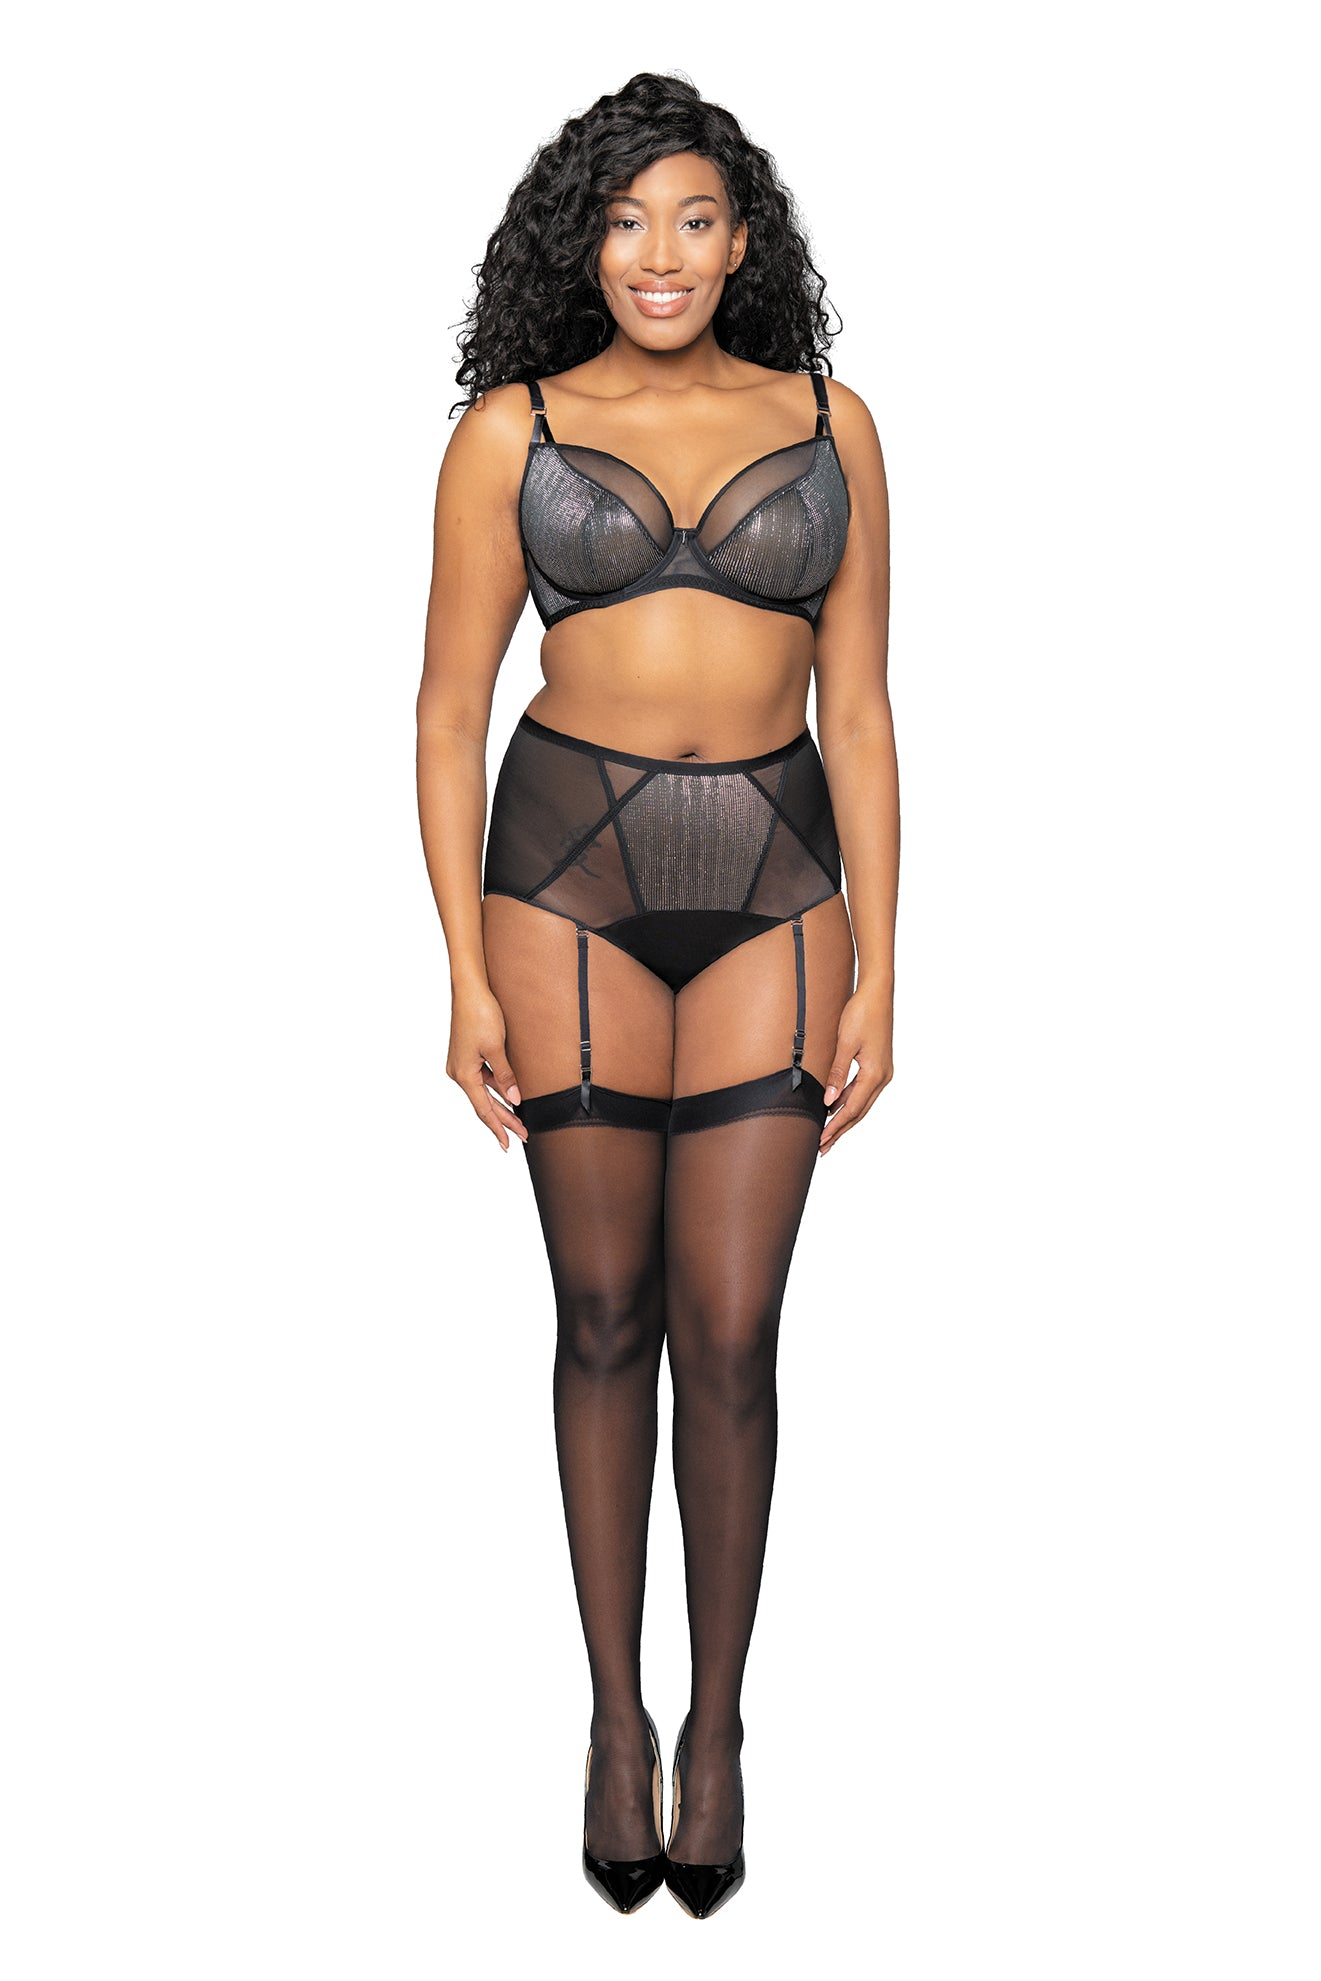 Curvy Kate Sparks Fly High Waisted Suspender Brief CK013214